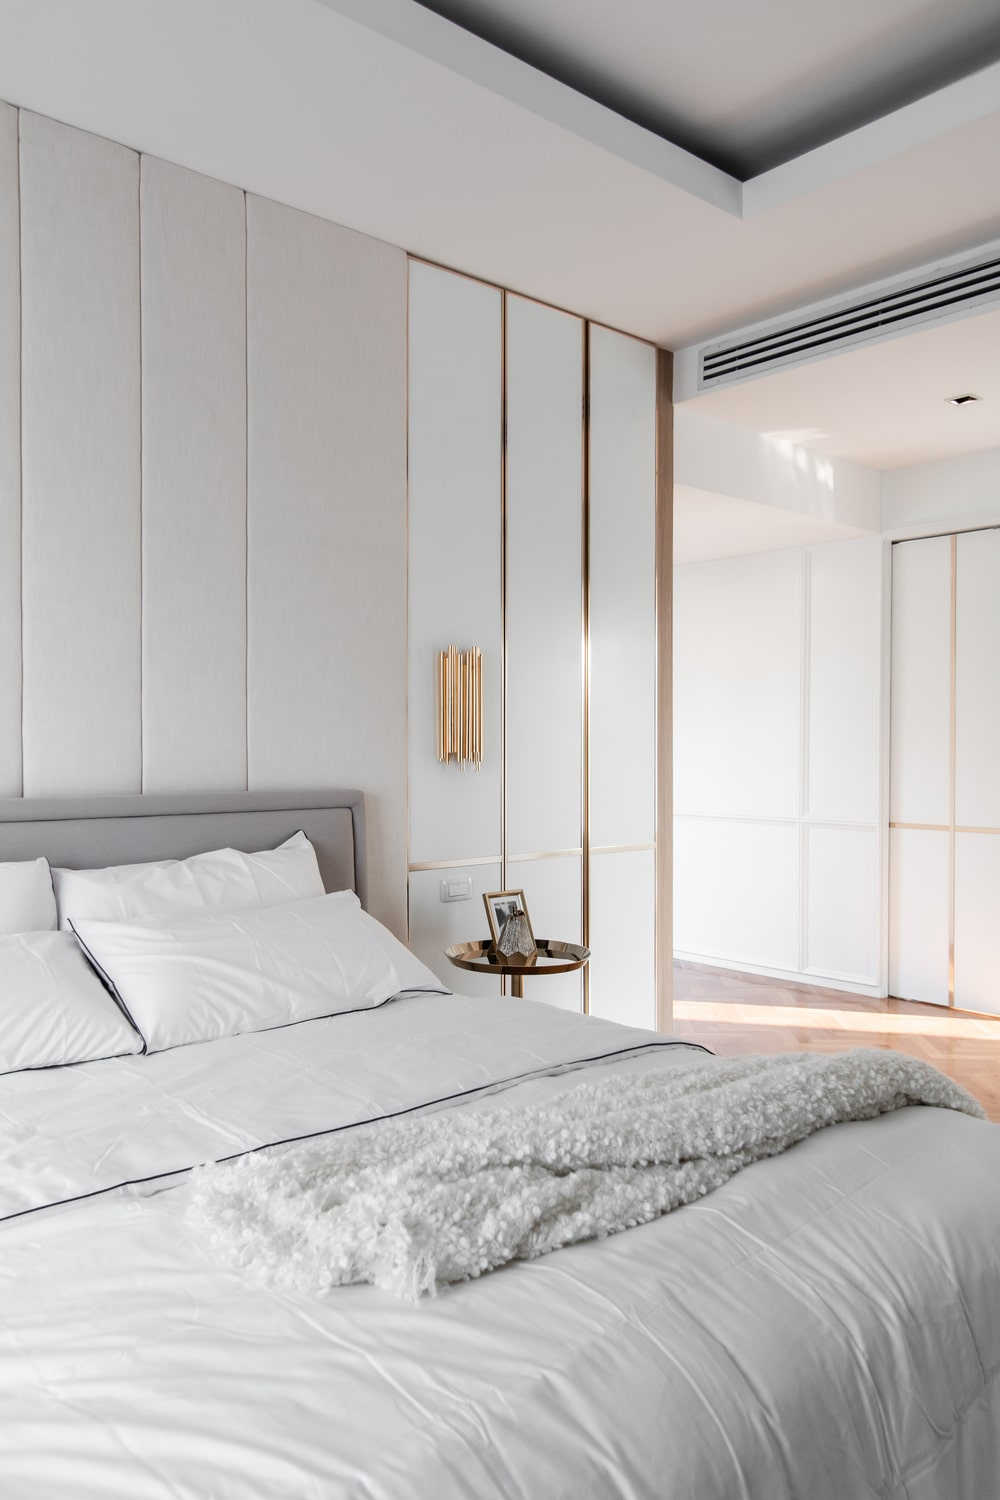 The bedside table is then topped with a wall-mounted sconce.